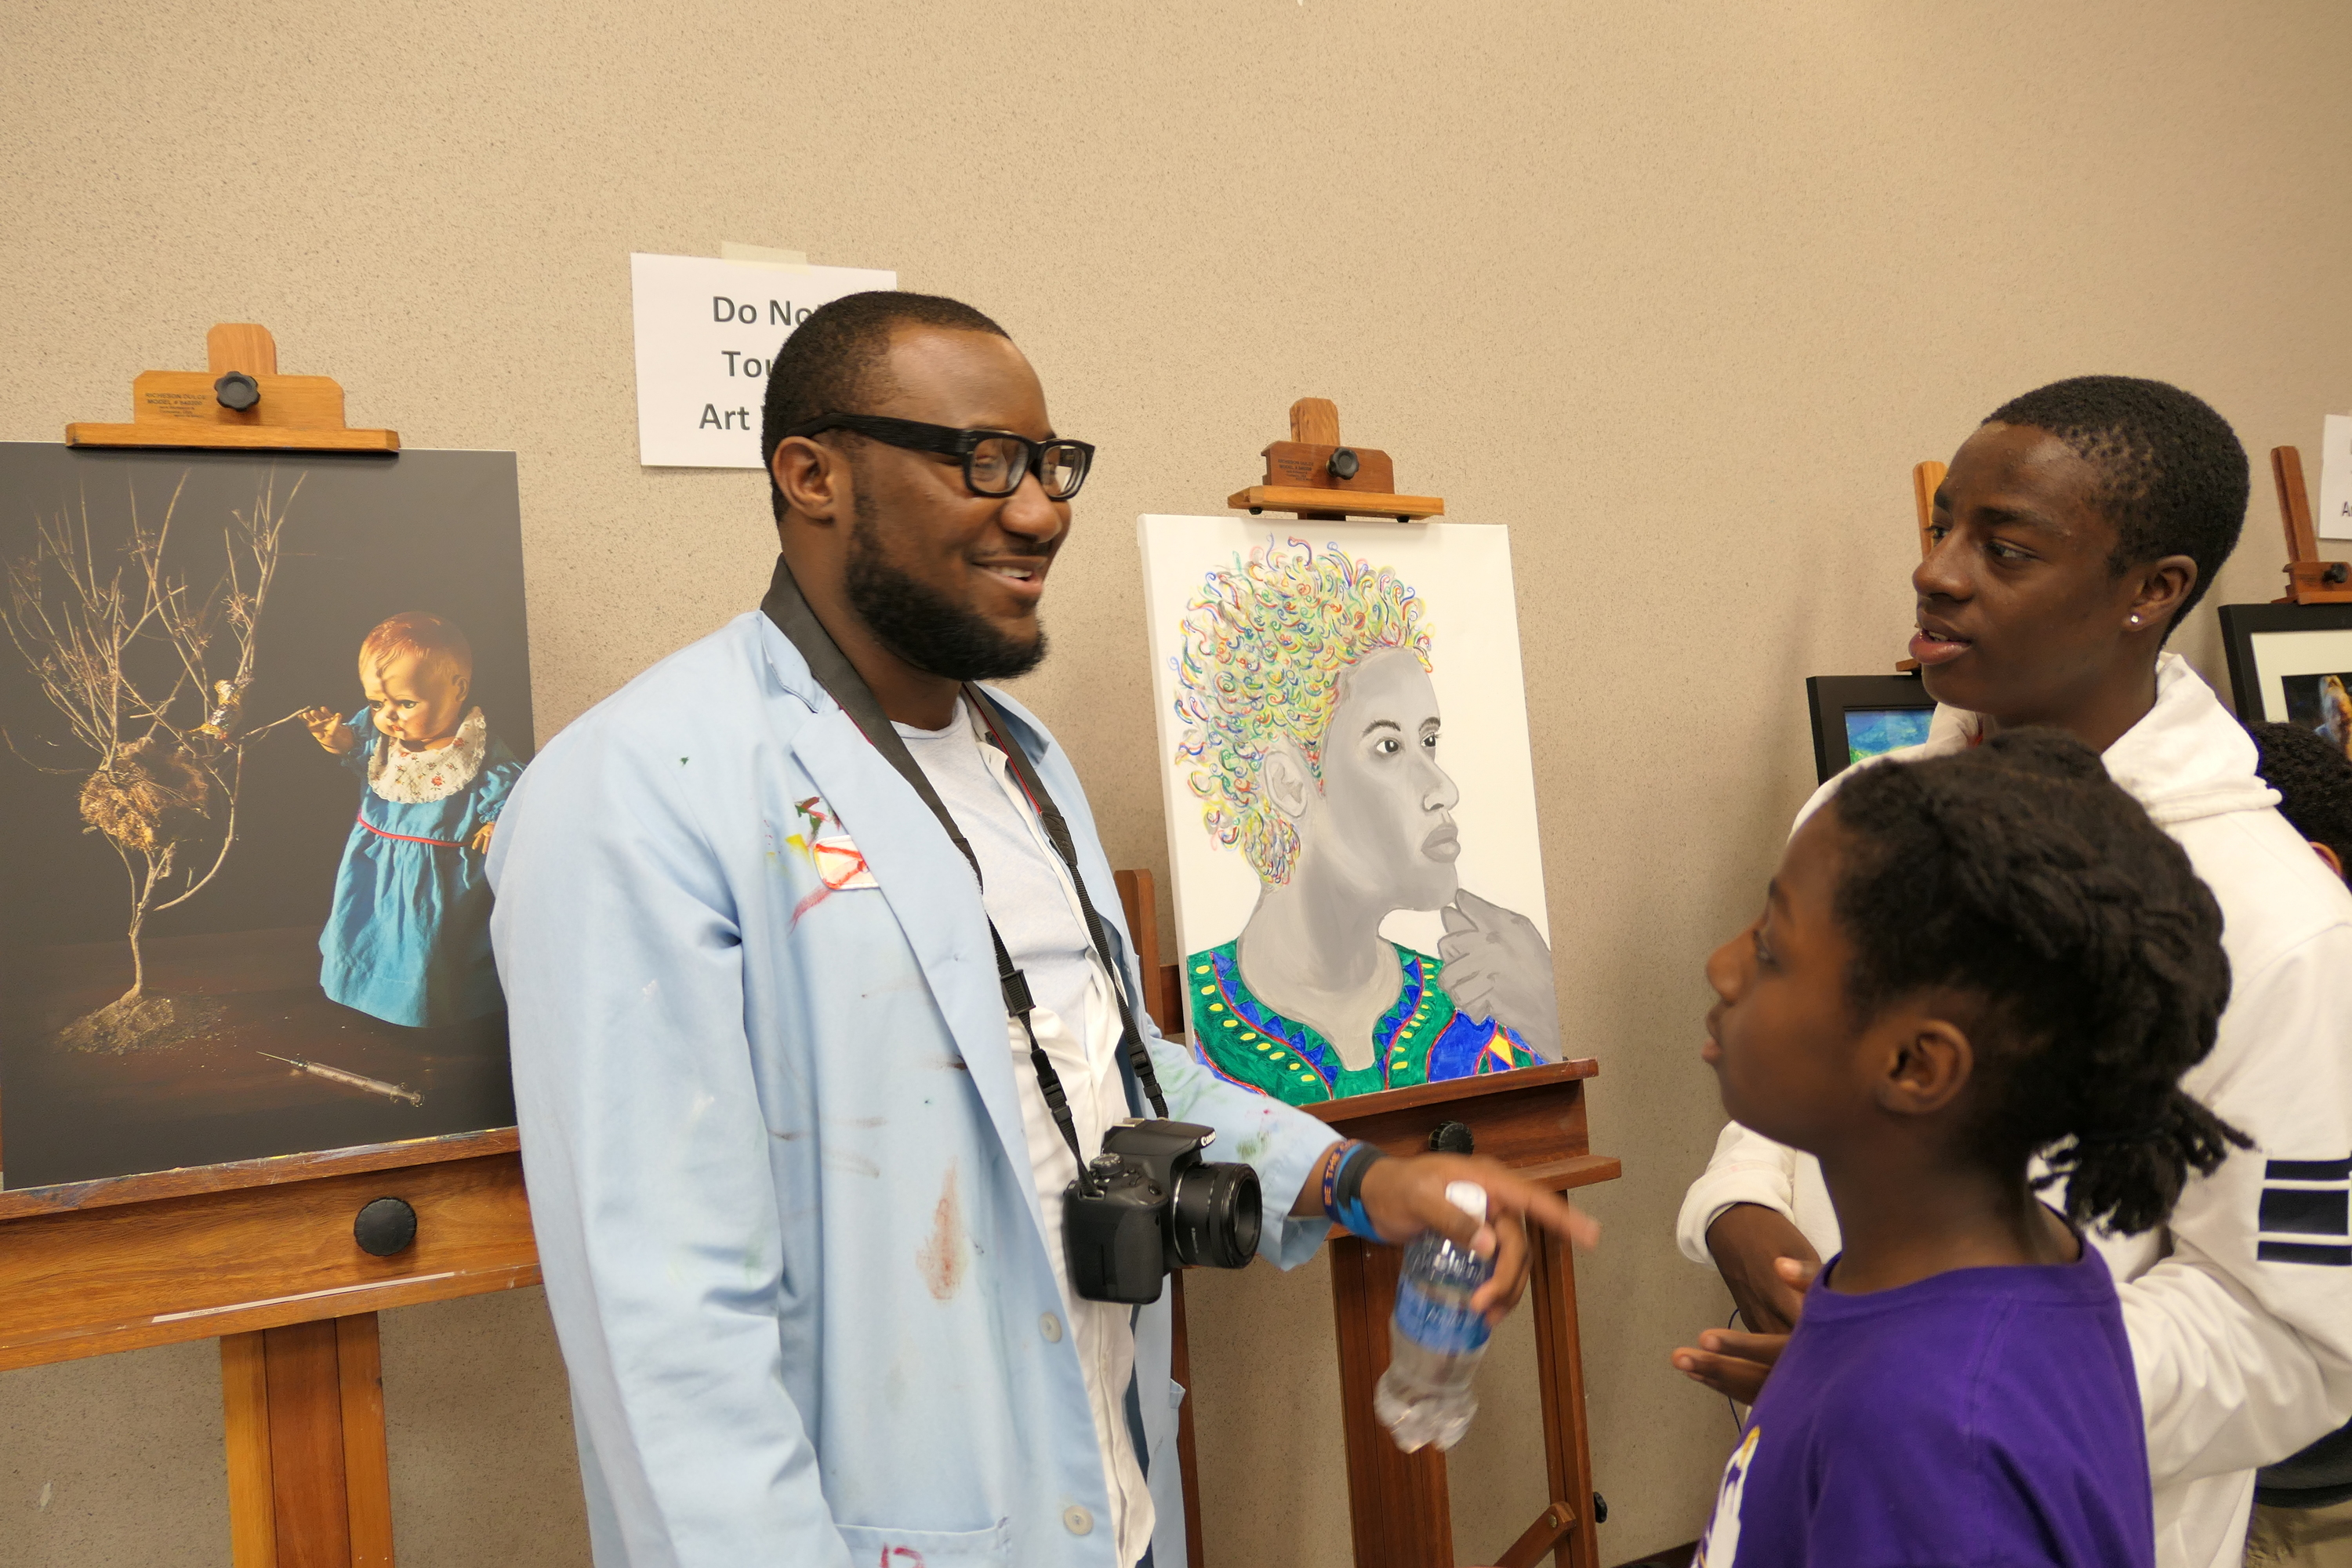 Student with a camera showing off artwork